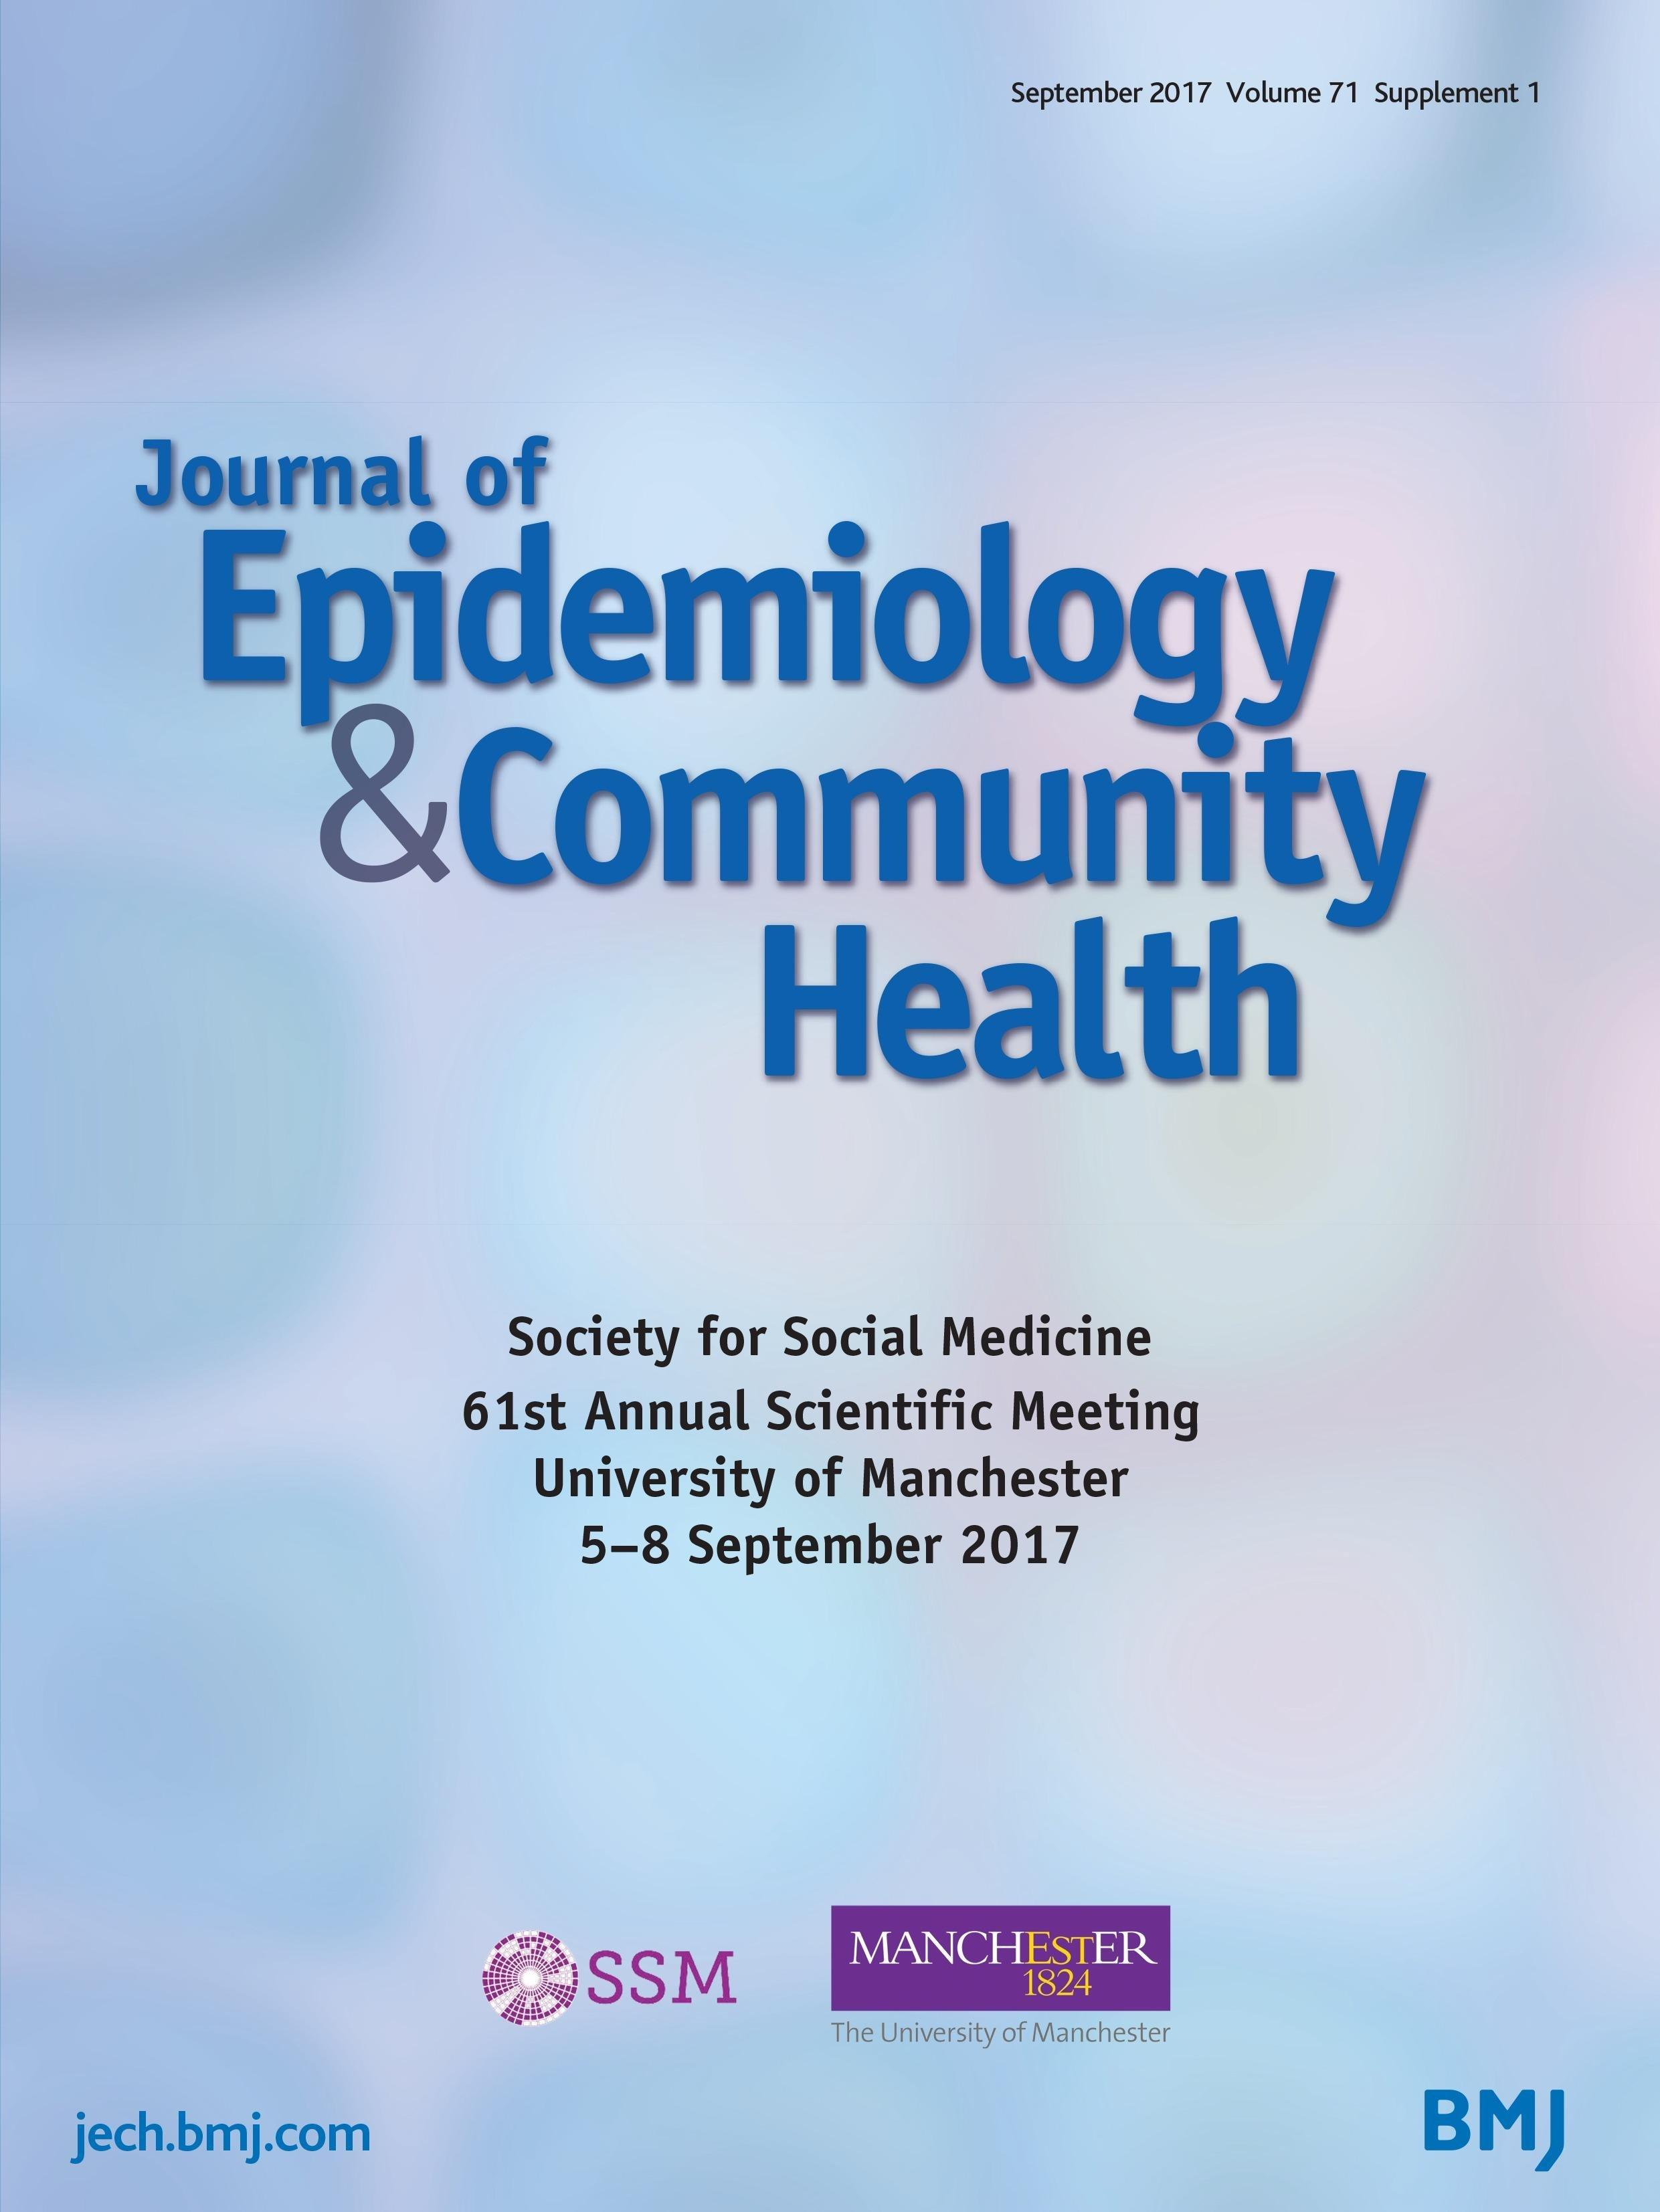 P37barriers To And Facilitators Of Effective Diabetes Self-management Among People Newly Diagnosed With Type 2 Diabetes Mellitus (t2dm): A Qualitative Study From Malaysia | Journal Of Epidemiology & Community Health